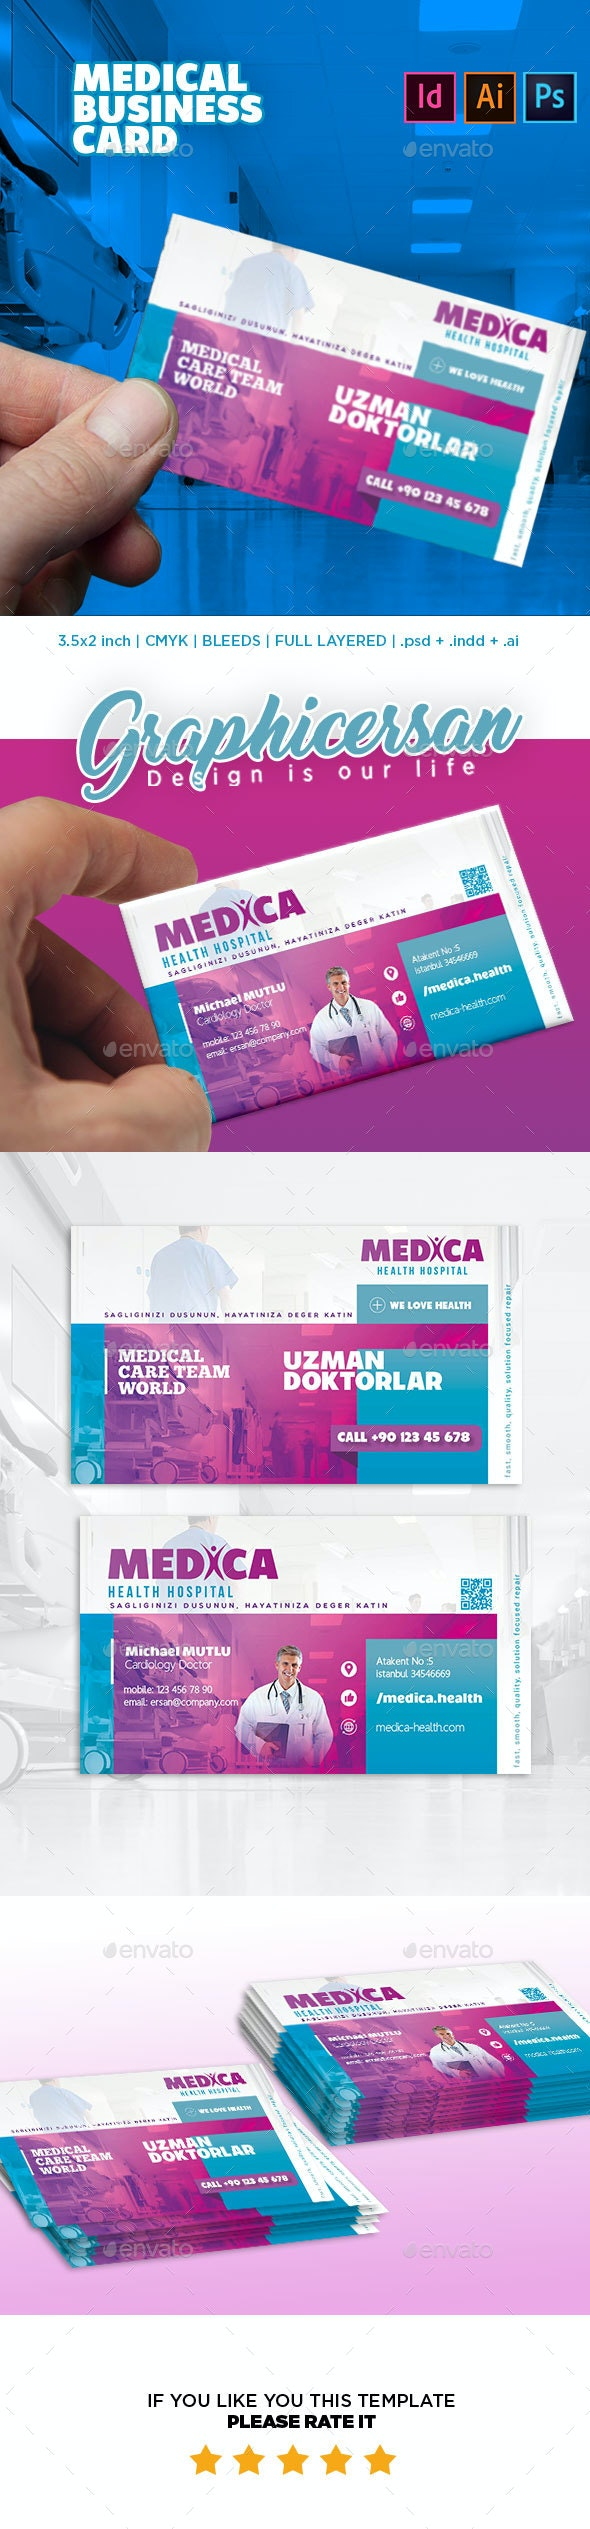 Medical Business Card Template - Corporate Business Cards